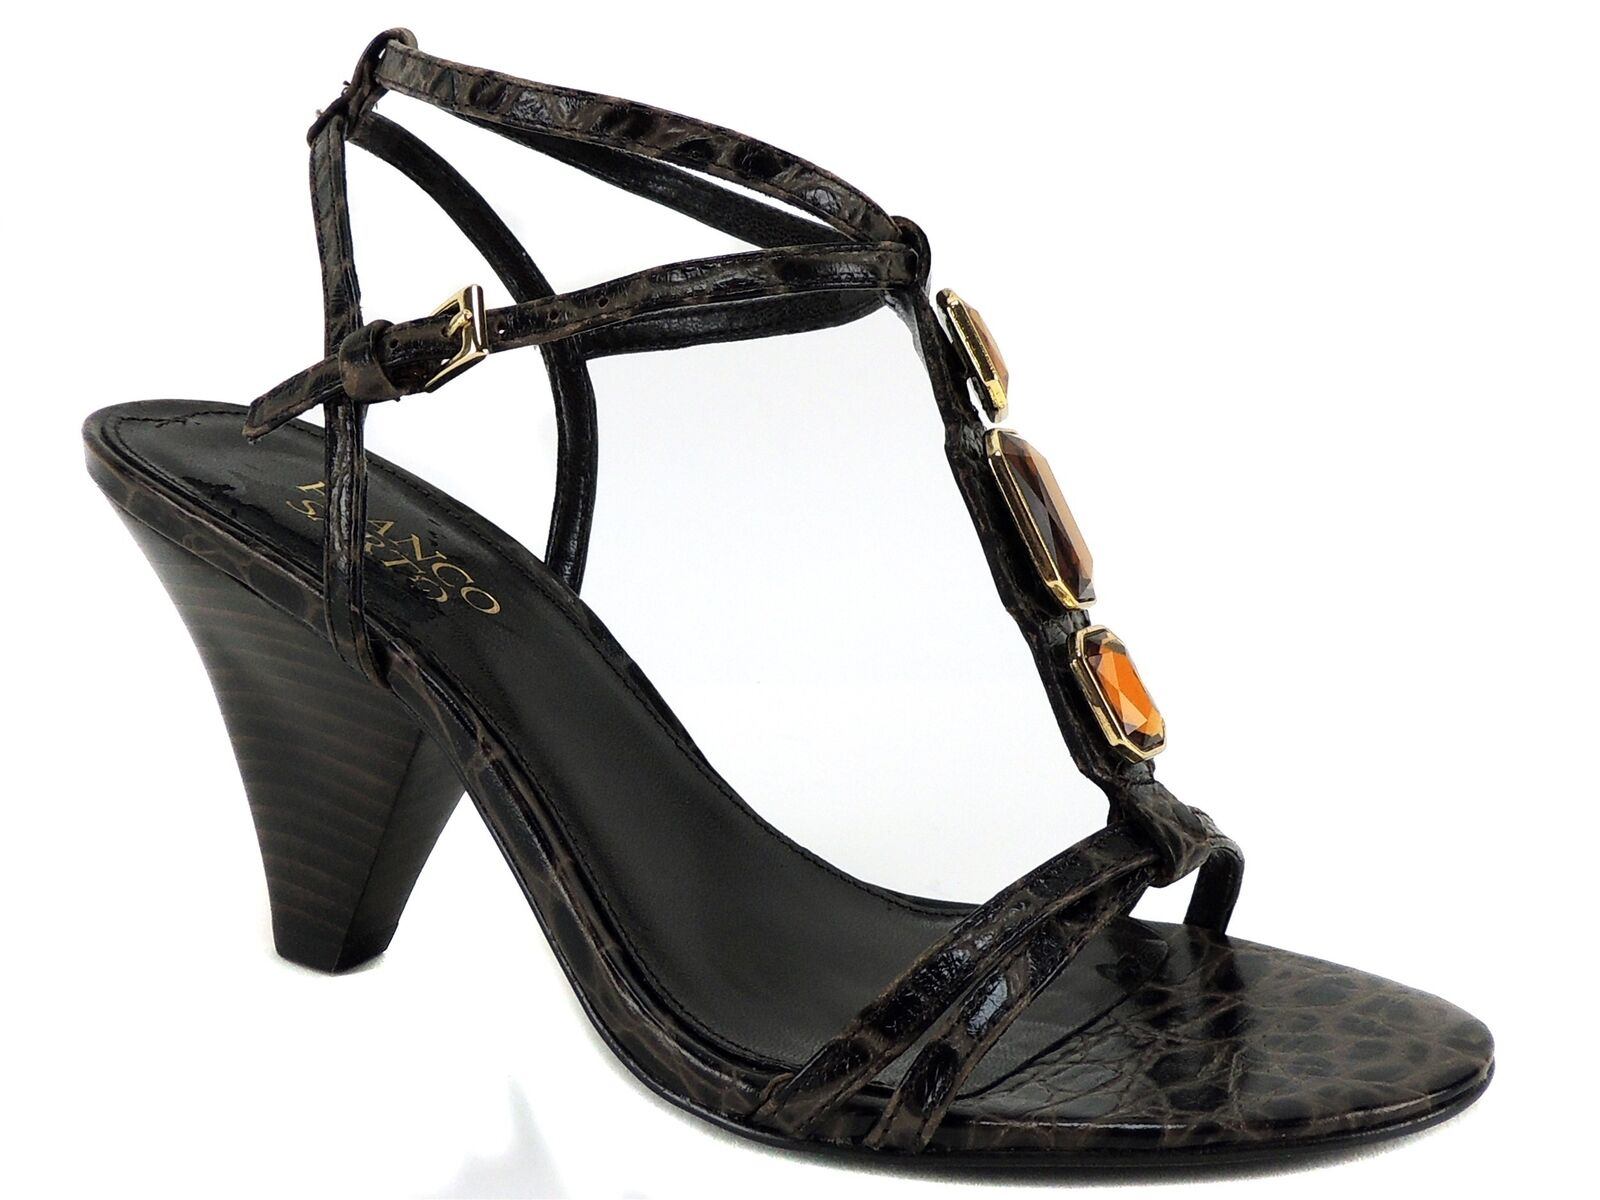 Franco Sarto Women's Phuket T-Strap Sandals Brown Snake Print Leather Size 7.5 M